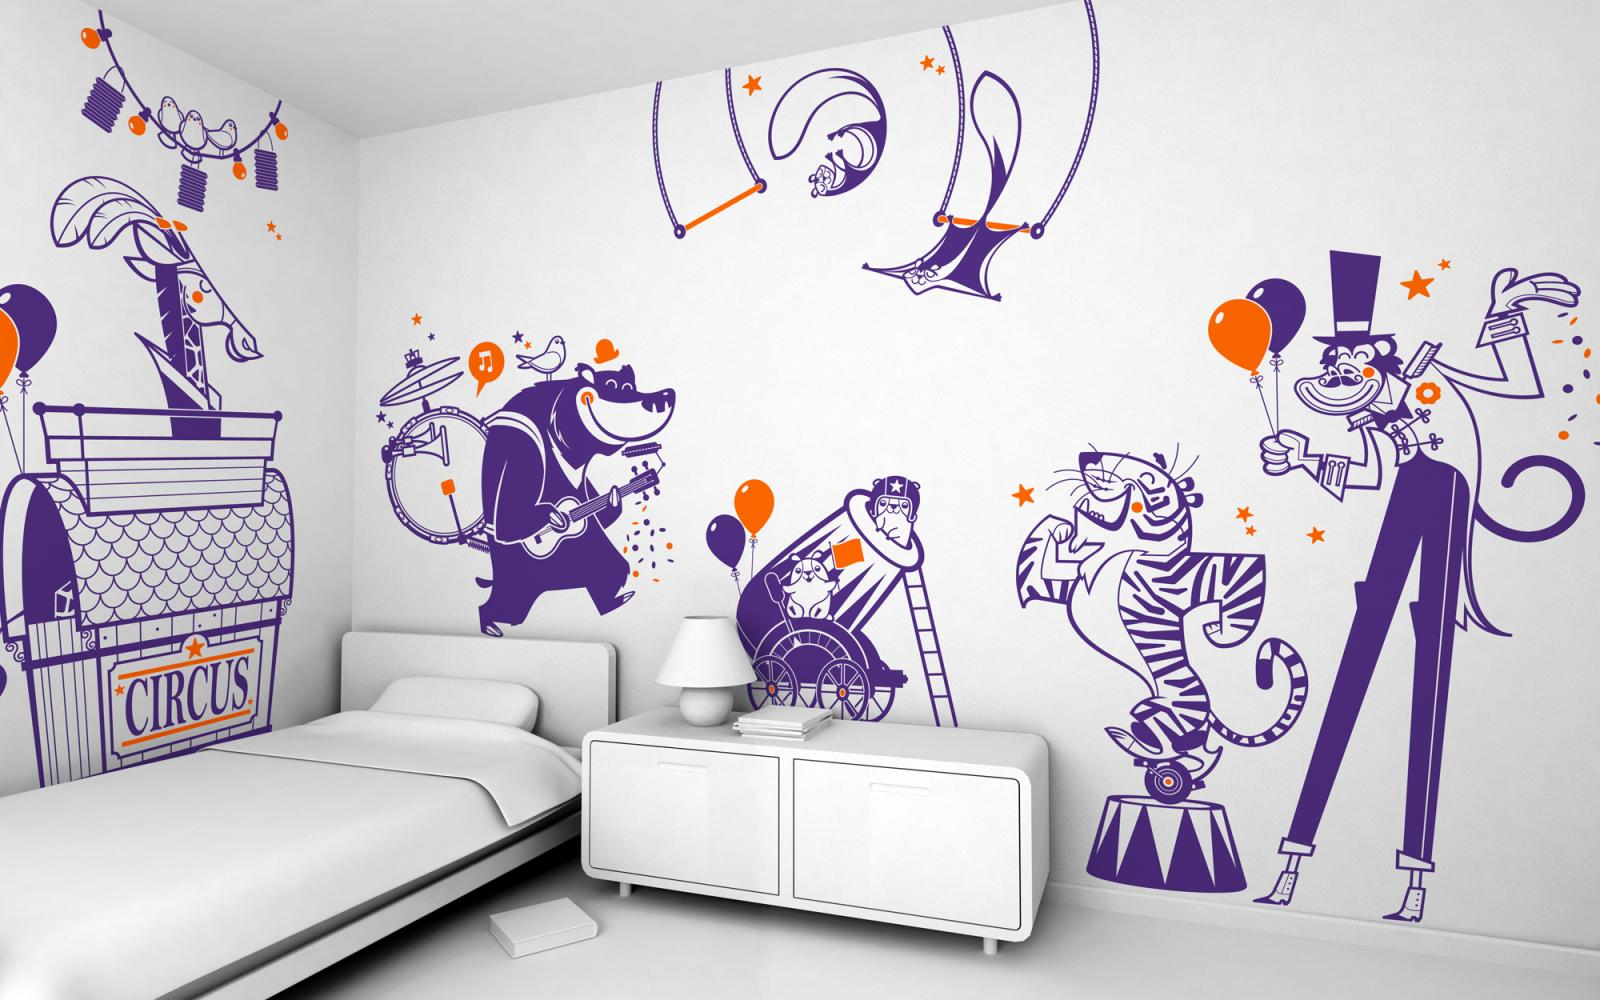 wall sticker mehr versch nerung f r kinderzimmerw nde home. Black Bedroom Furniture Sets. Home Design Ideas